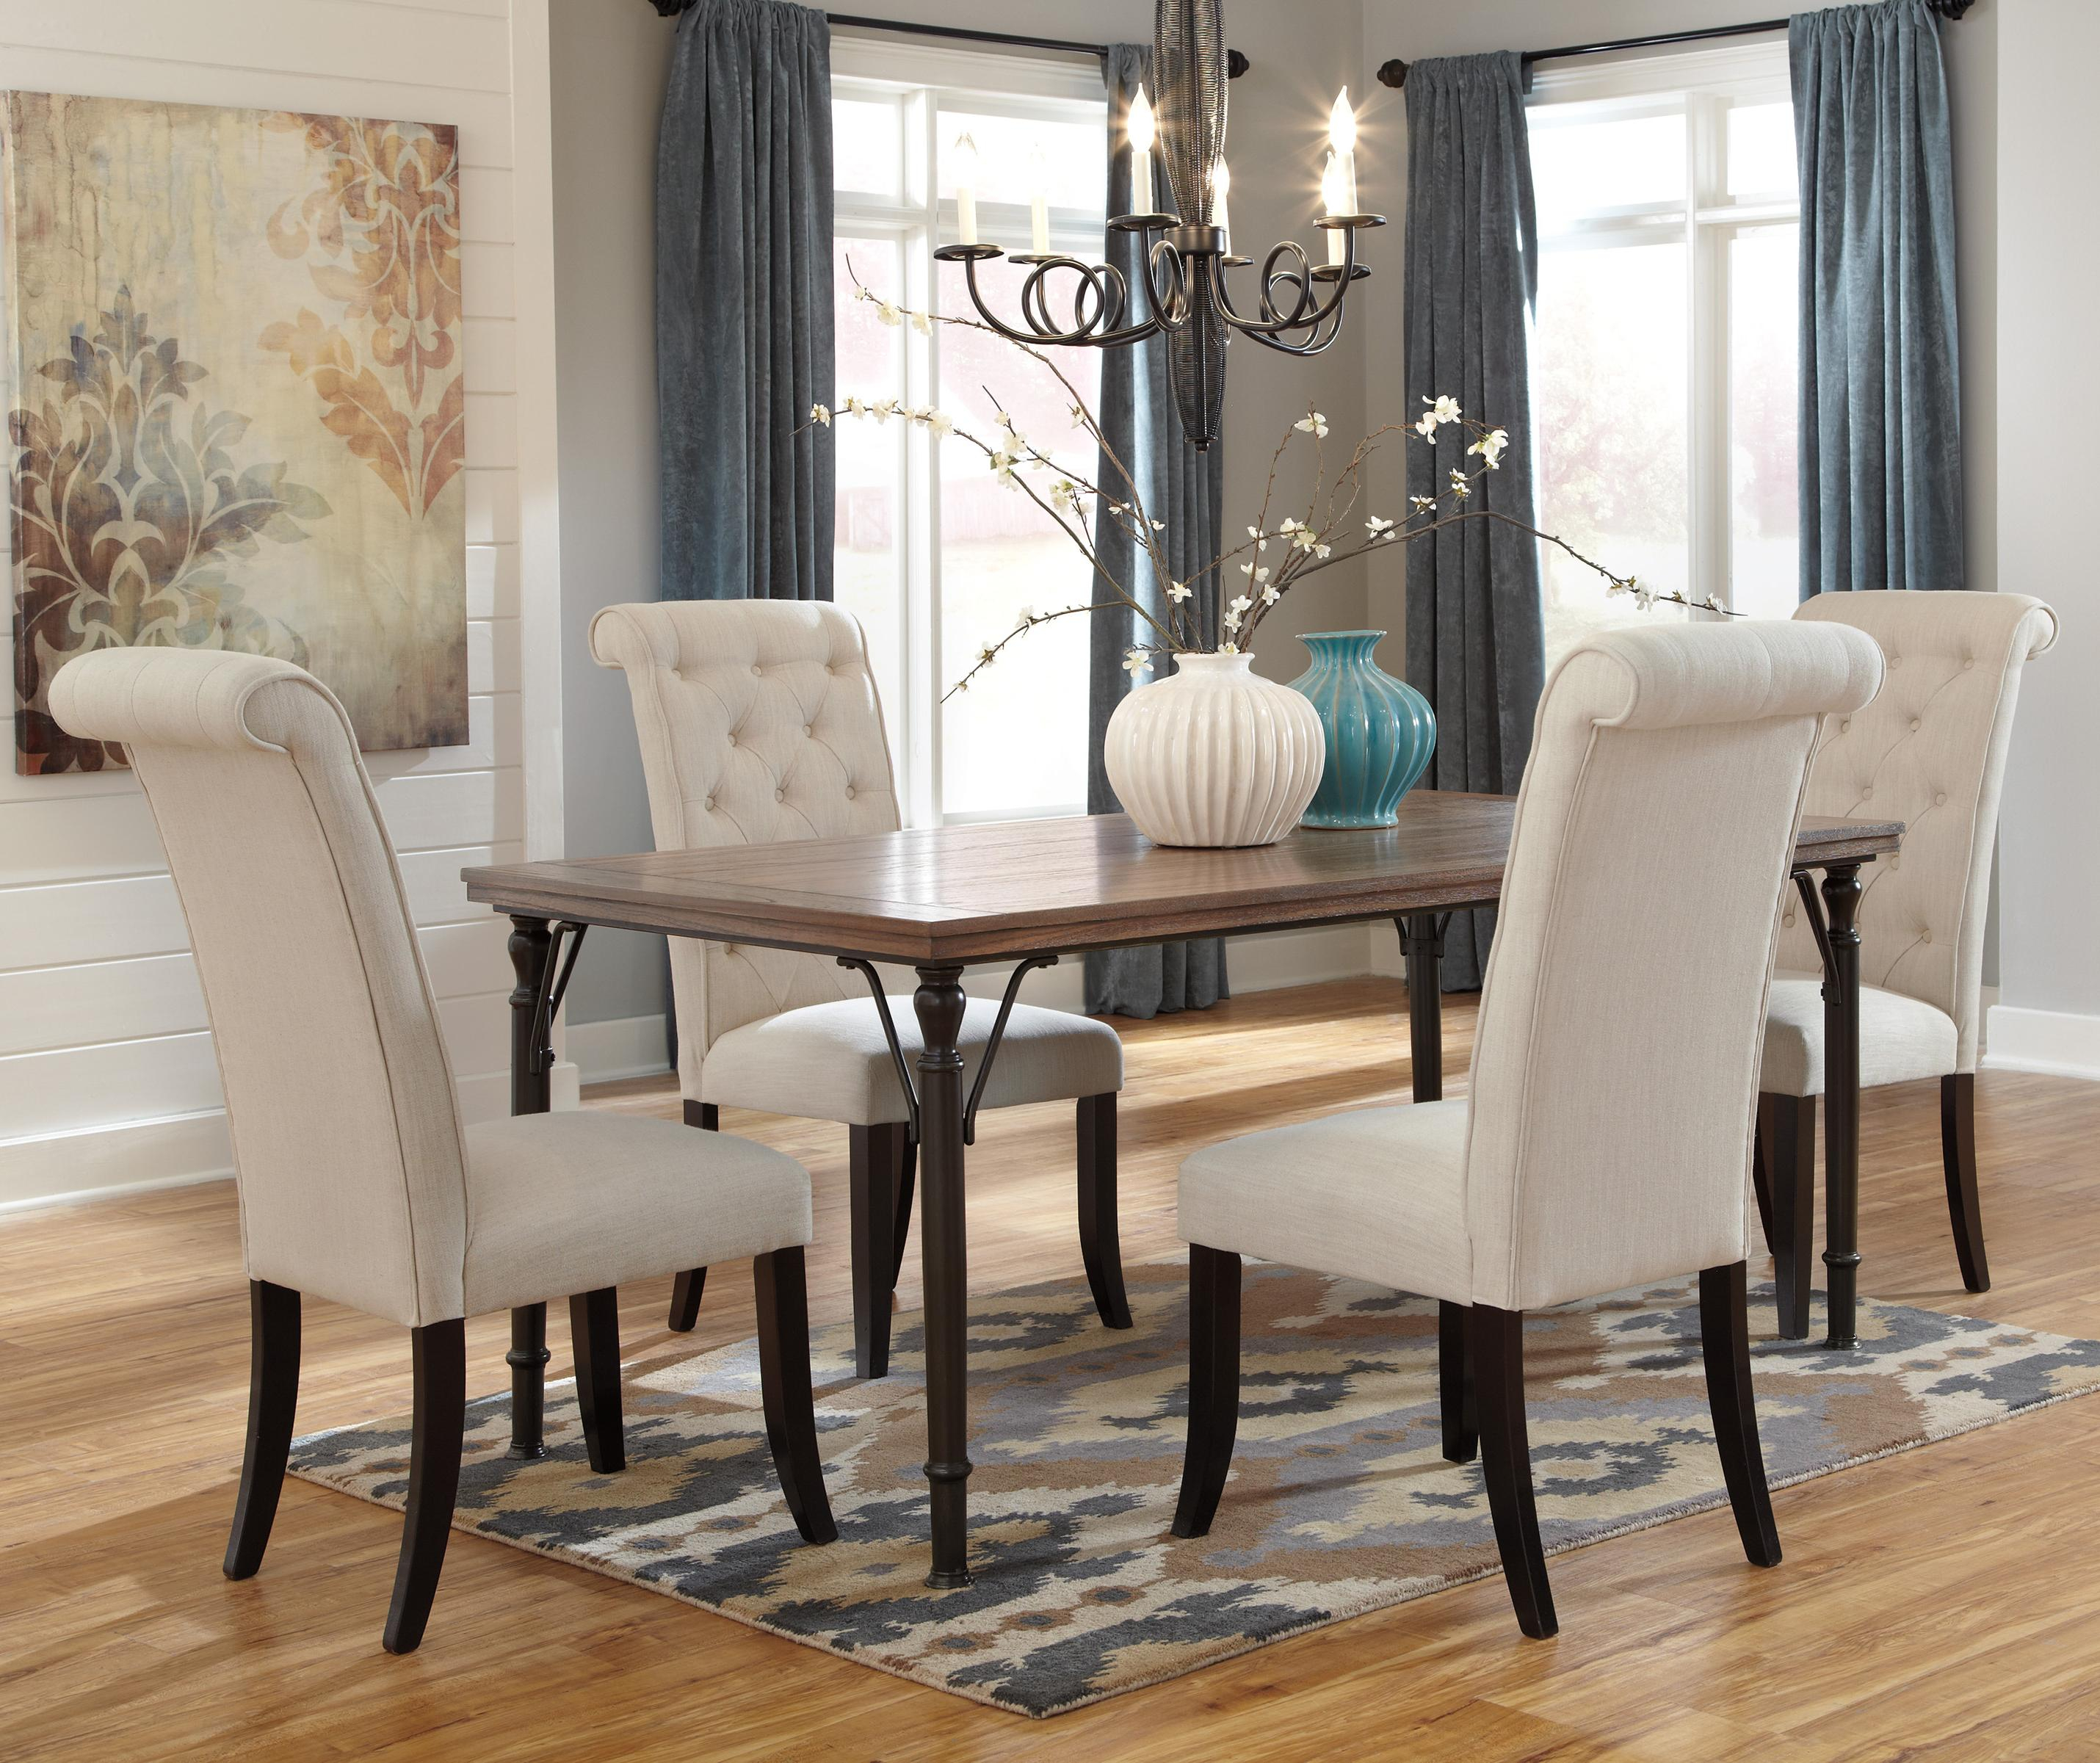 Dining Room Set Ashley Furniture Table And Chairs Ashley Furniture with 11 Awesome Ways How to Upgrade Living Room Sets Ashley